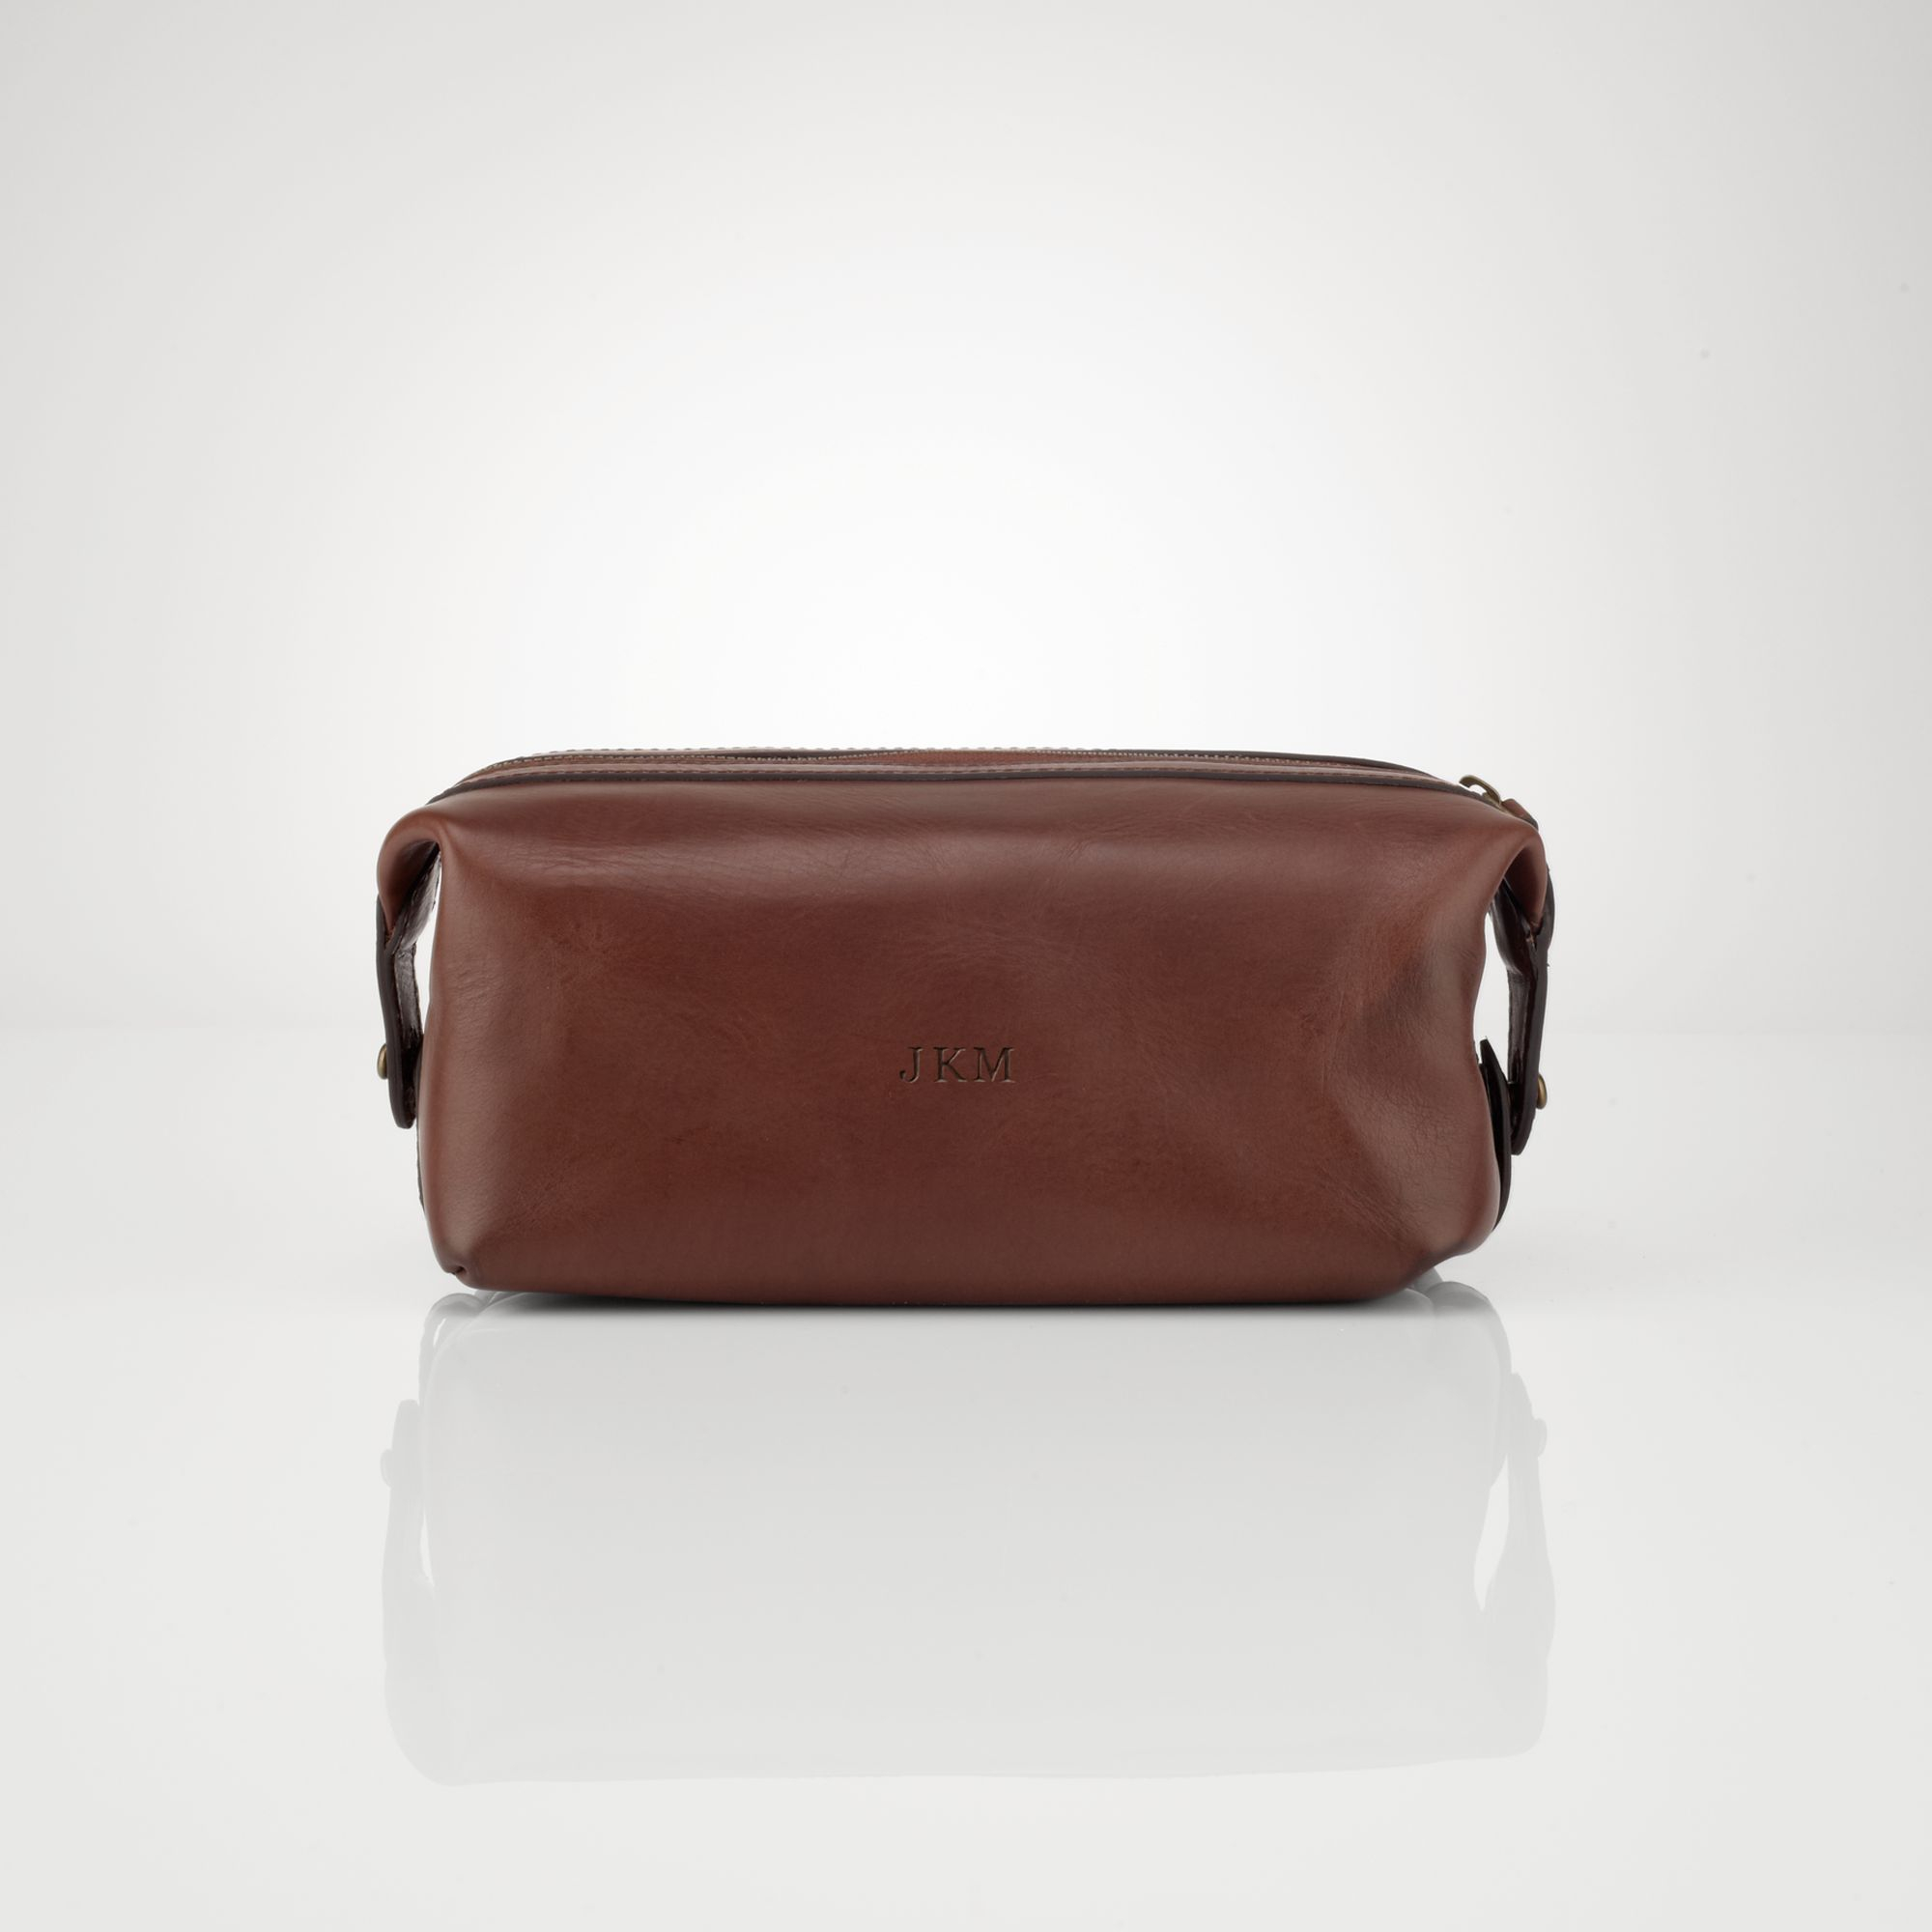 65d6f5cee2ed Polo Ralph Lauren Leather Travel Bag in Brown for Men - Lyst